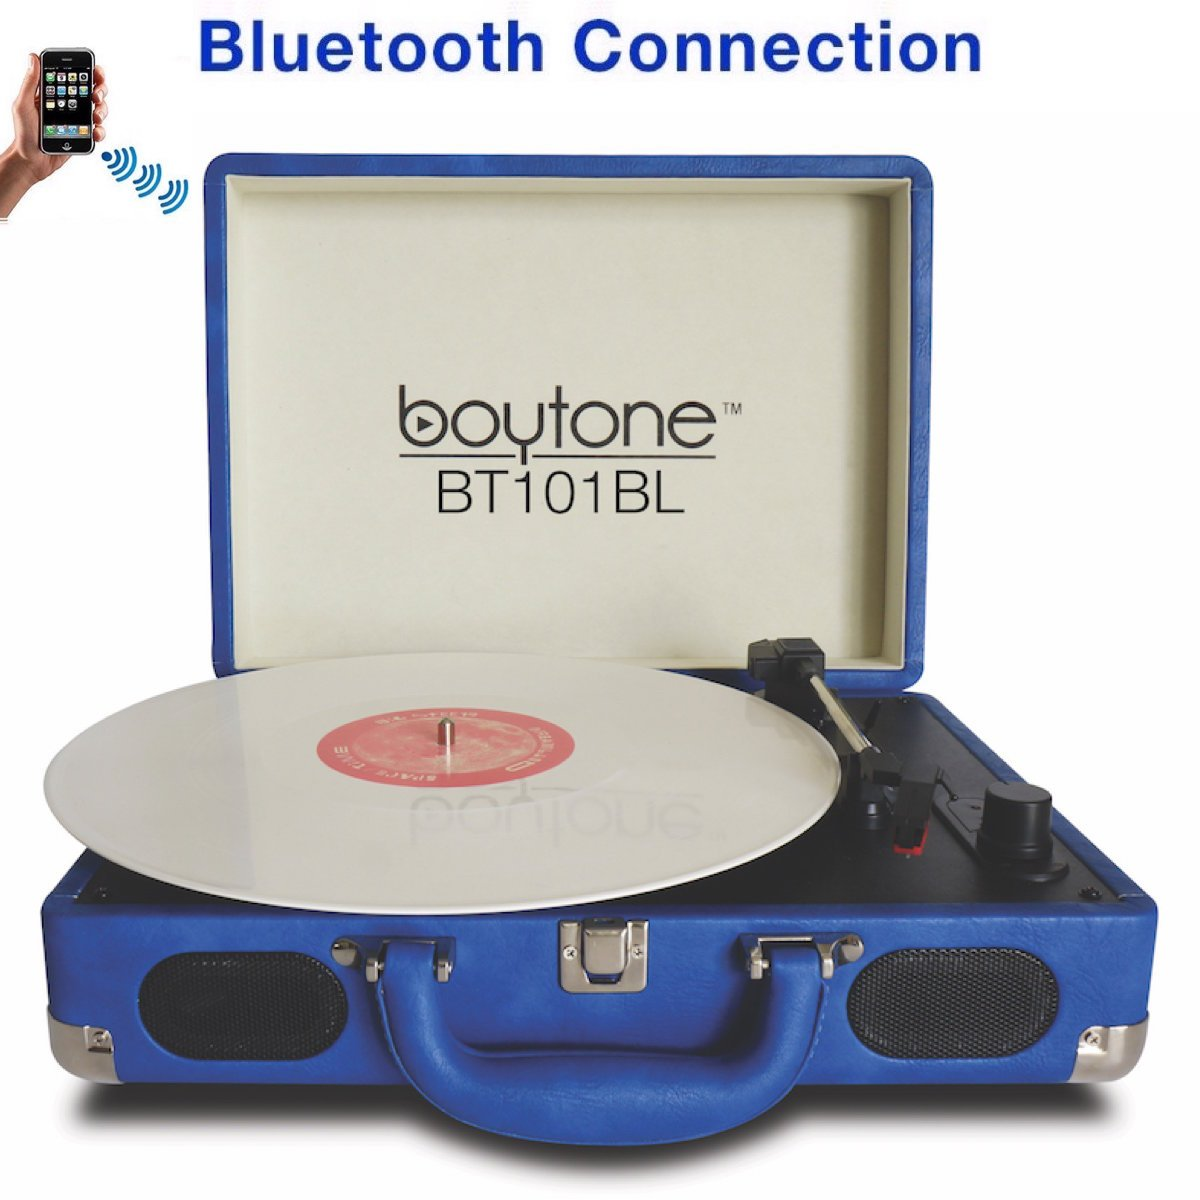 Boytone BT-101BL Bluetooth Turntable Briefcase Record player AC-DC, Built in Rechargeable Battery, 2 Stereo Speakers 3-speed, LCD Display, FM Radio, USB/SD,RCA, AUX / MP3, Encoding, 110/220 Volt.